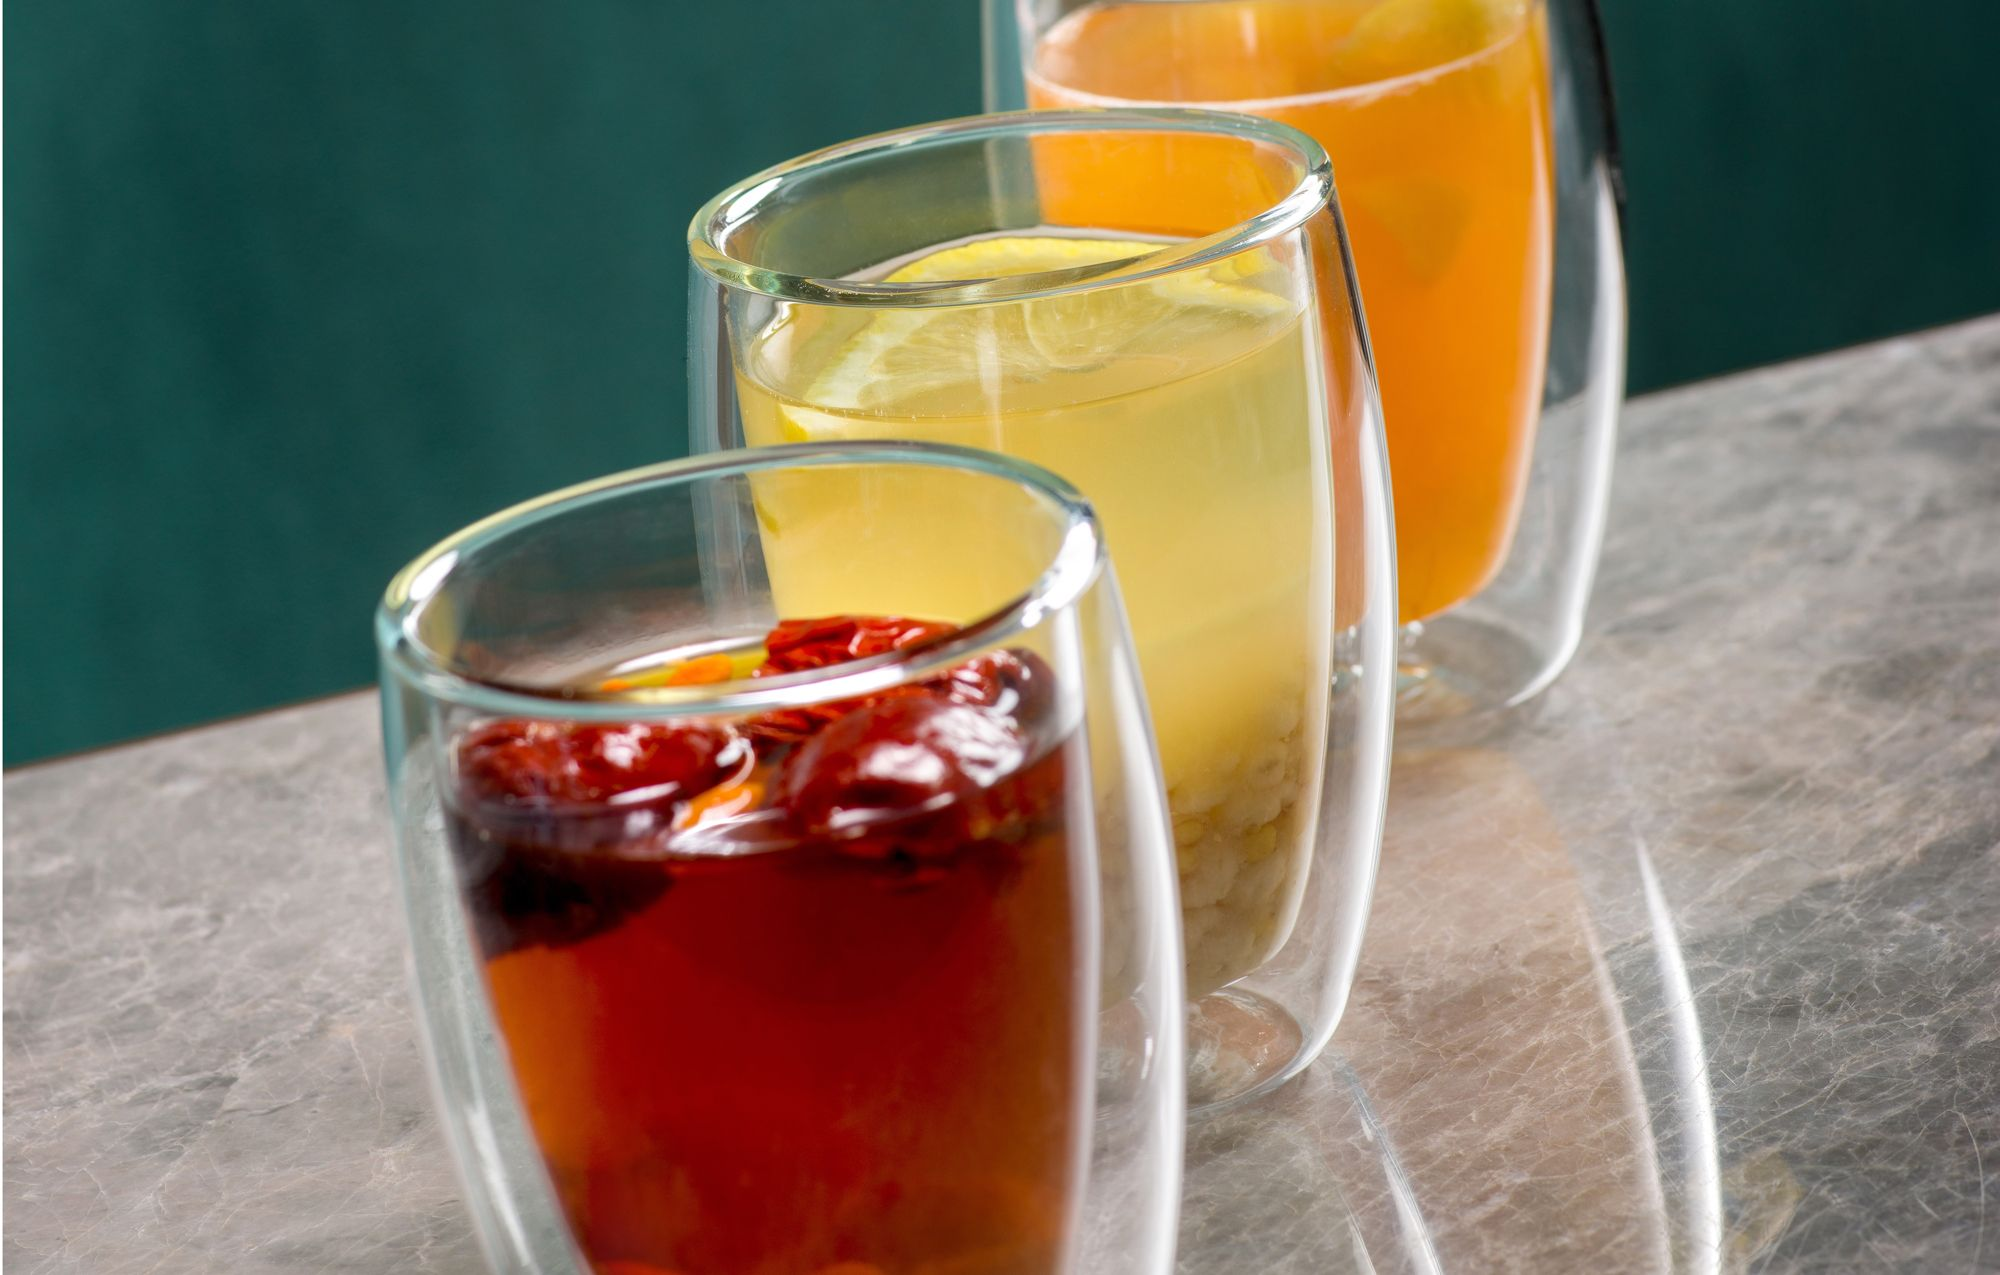 Hearty Winter Hot Beverages at 10 Shanghai